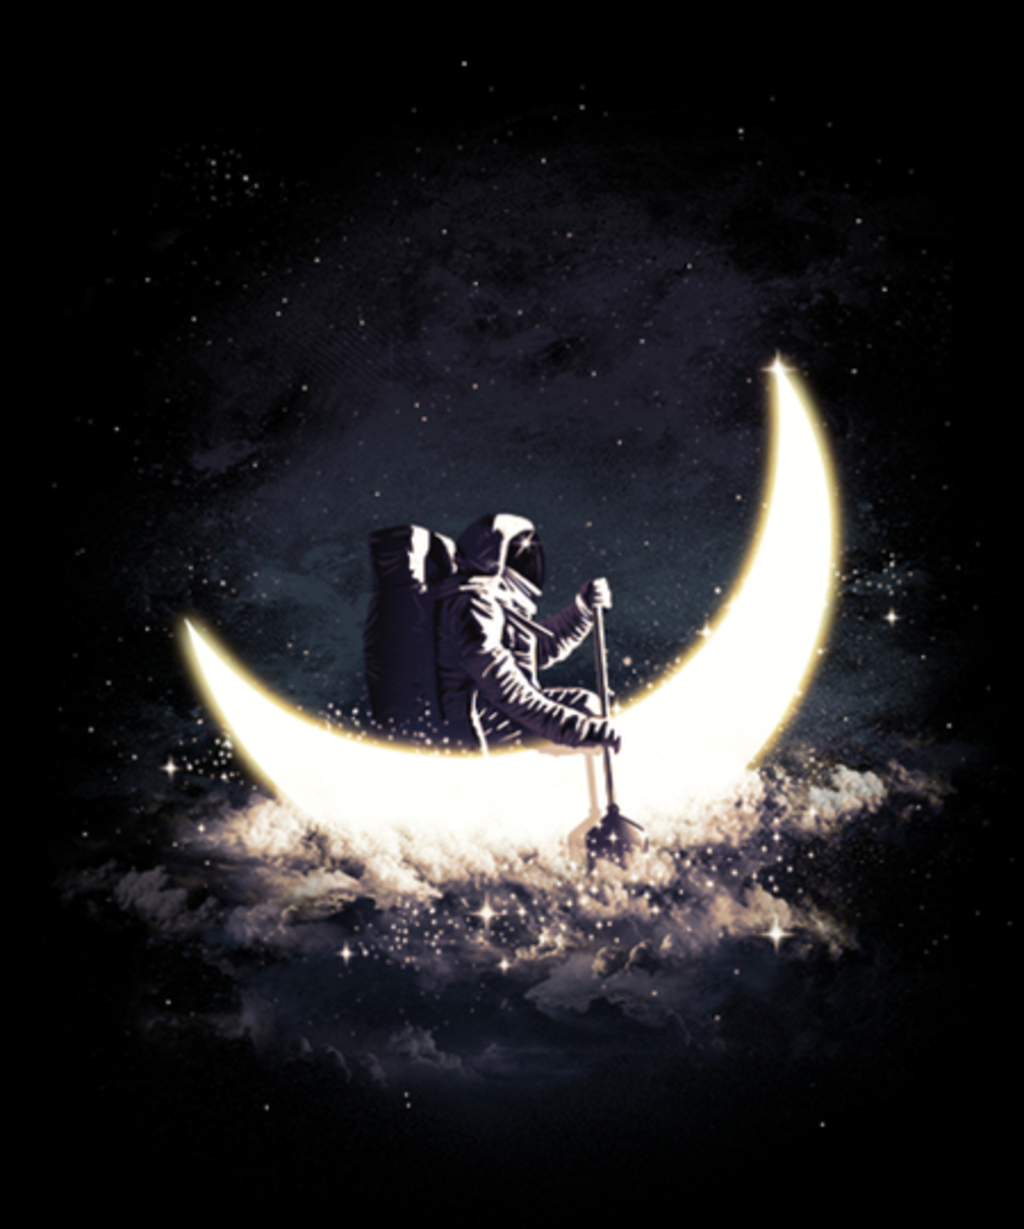 Qwertee: Moon Sailing